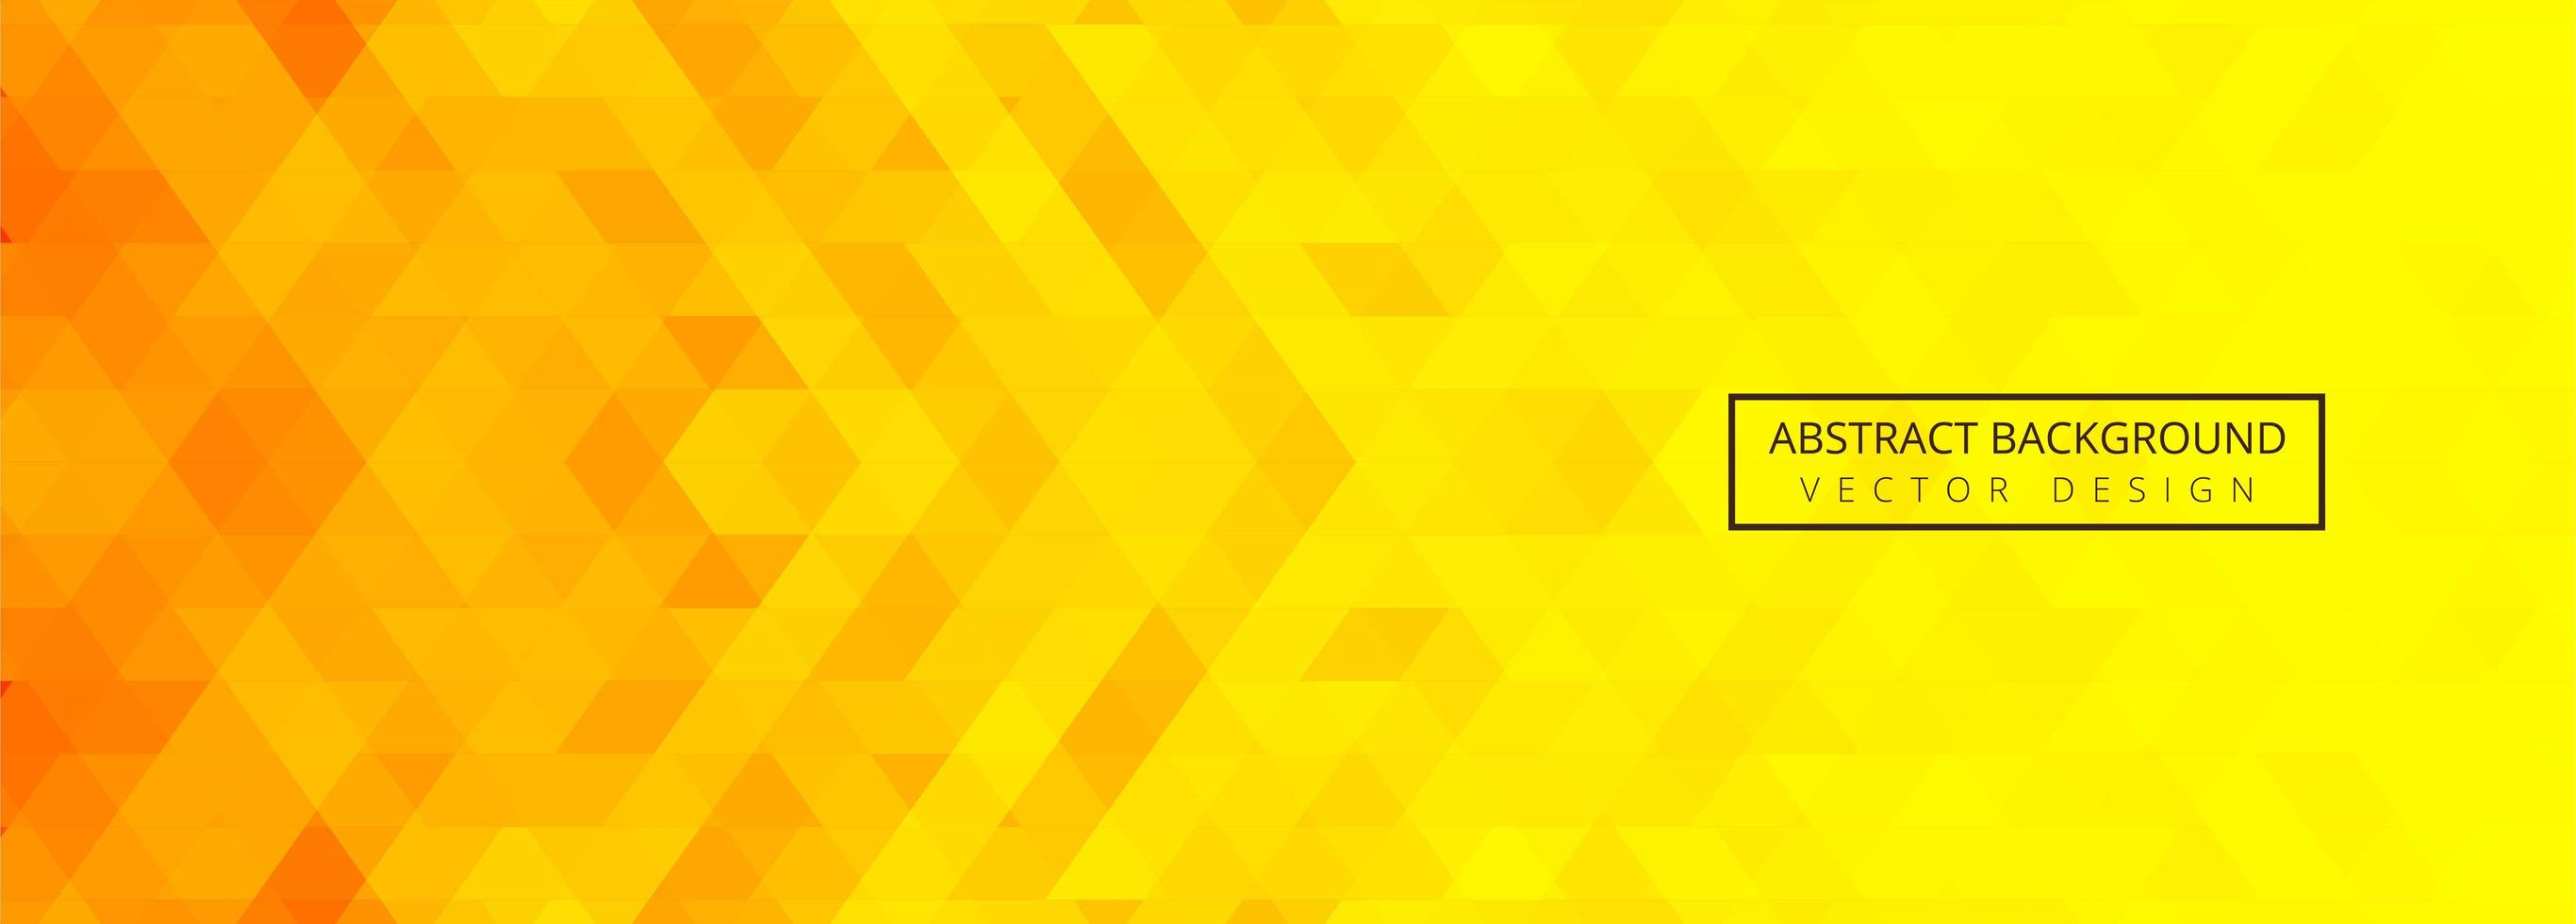 Abstract orange and yellow geometric tile banner  vector